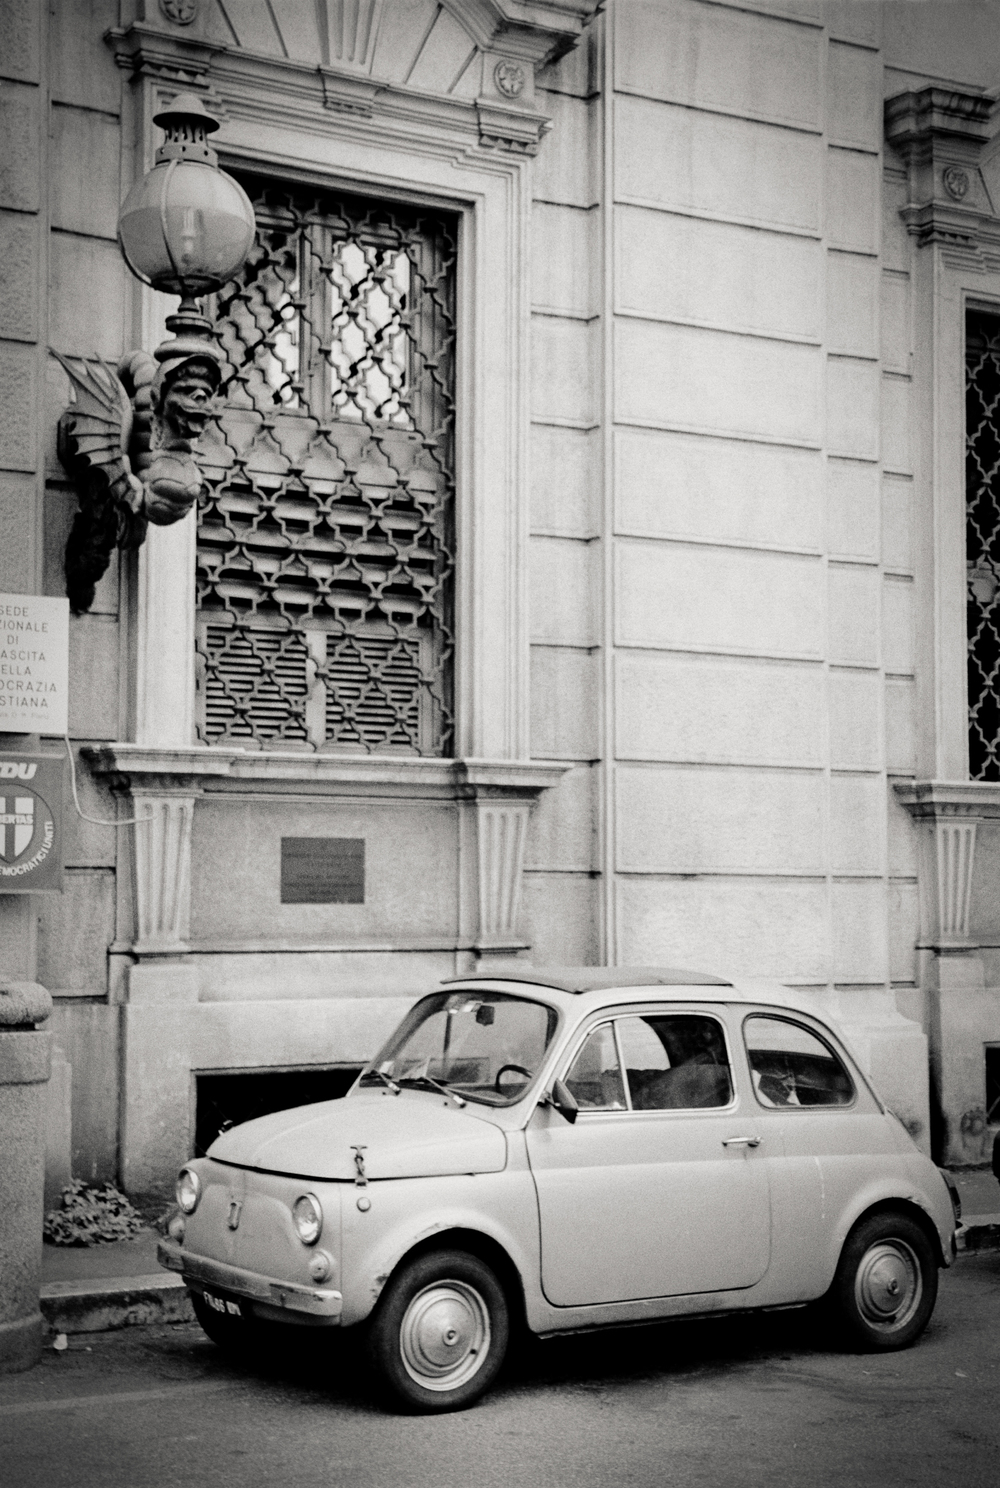 vintage Fiat, Florence, Italy 2001.